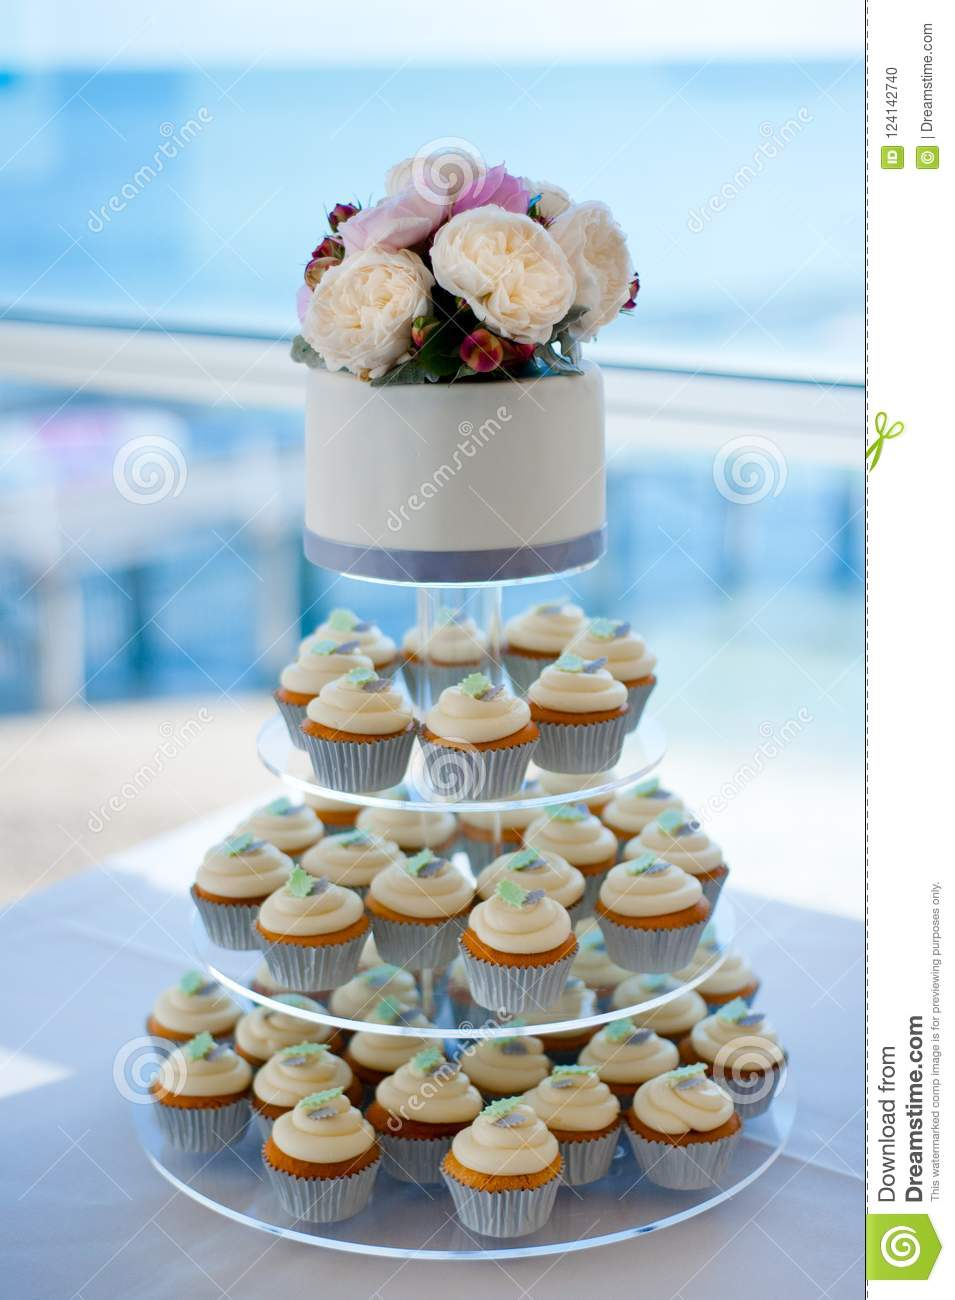 Wedding Cake With Cupcakes And Roses Stock Photo Image Of Tier Decoration 124142740